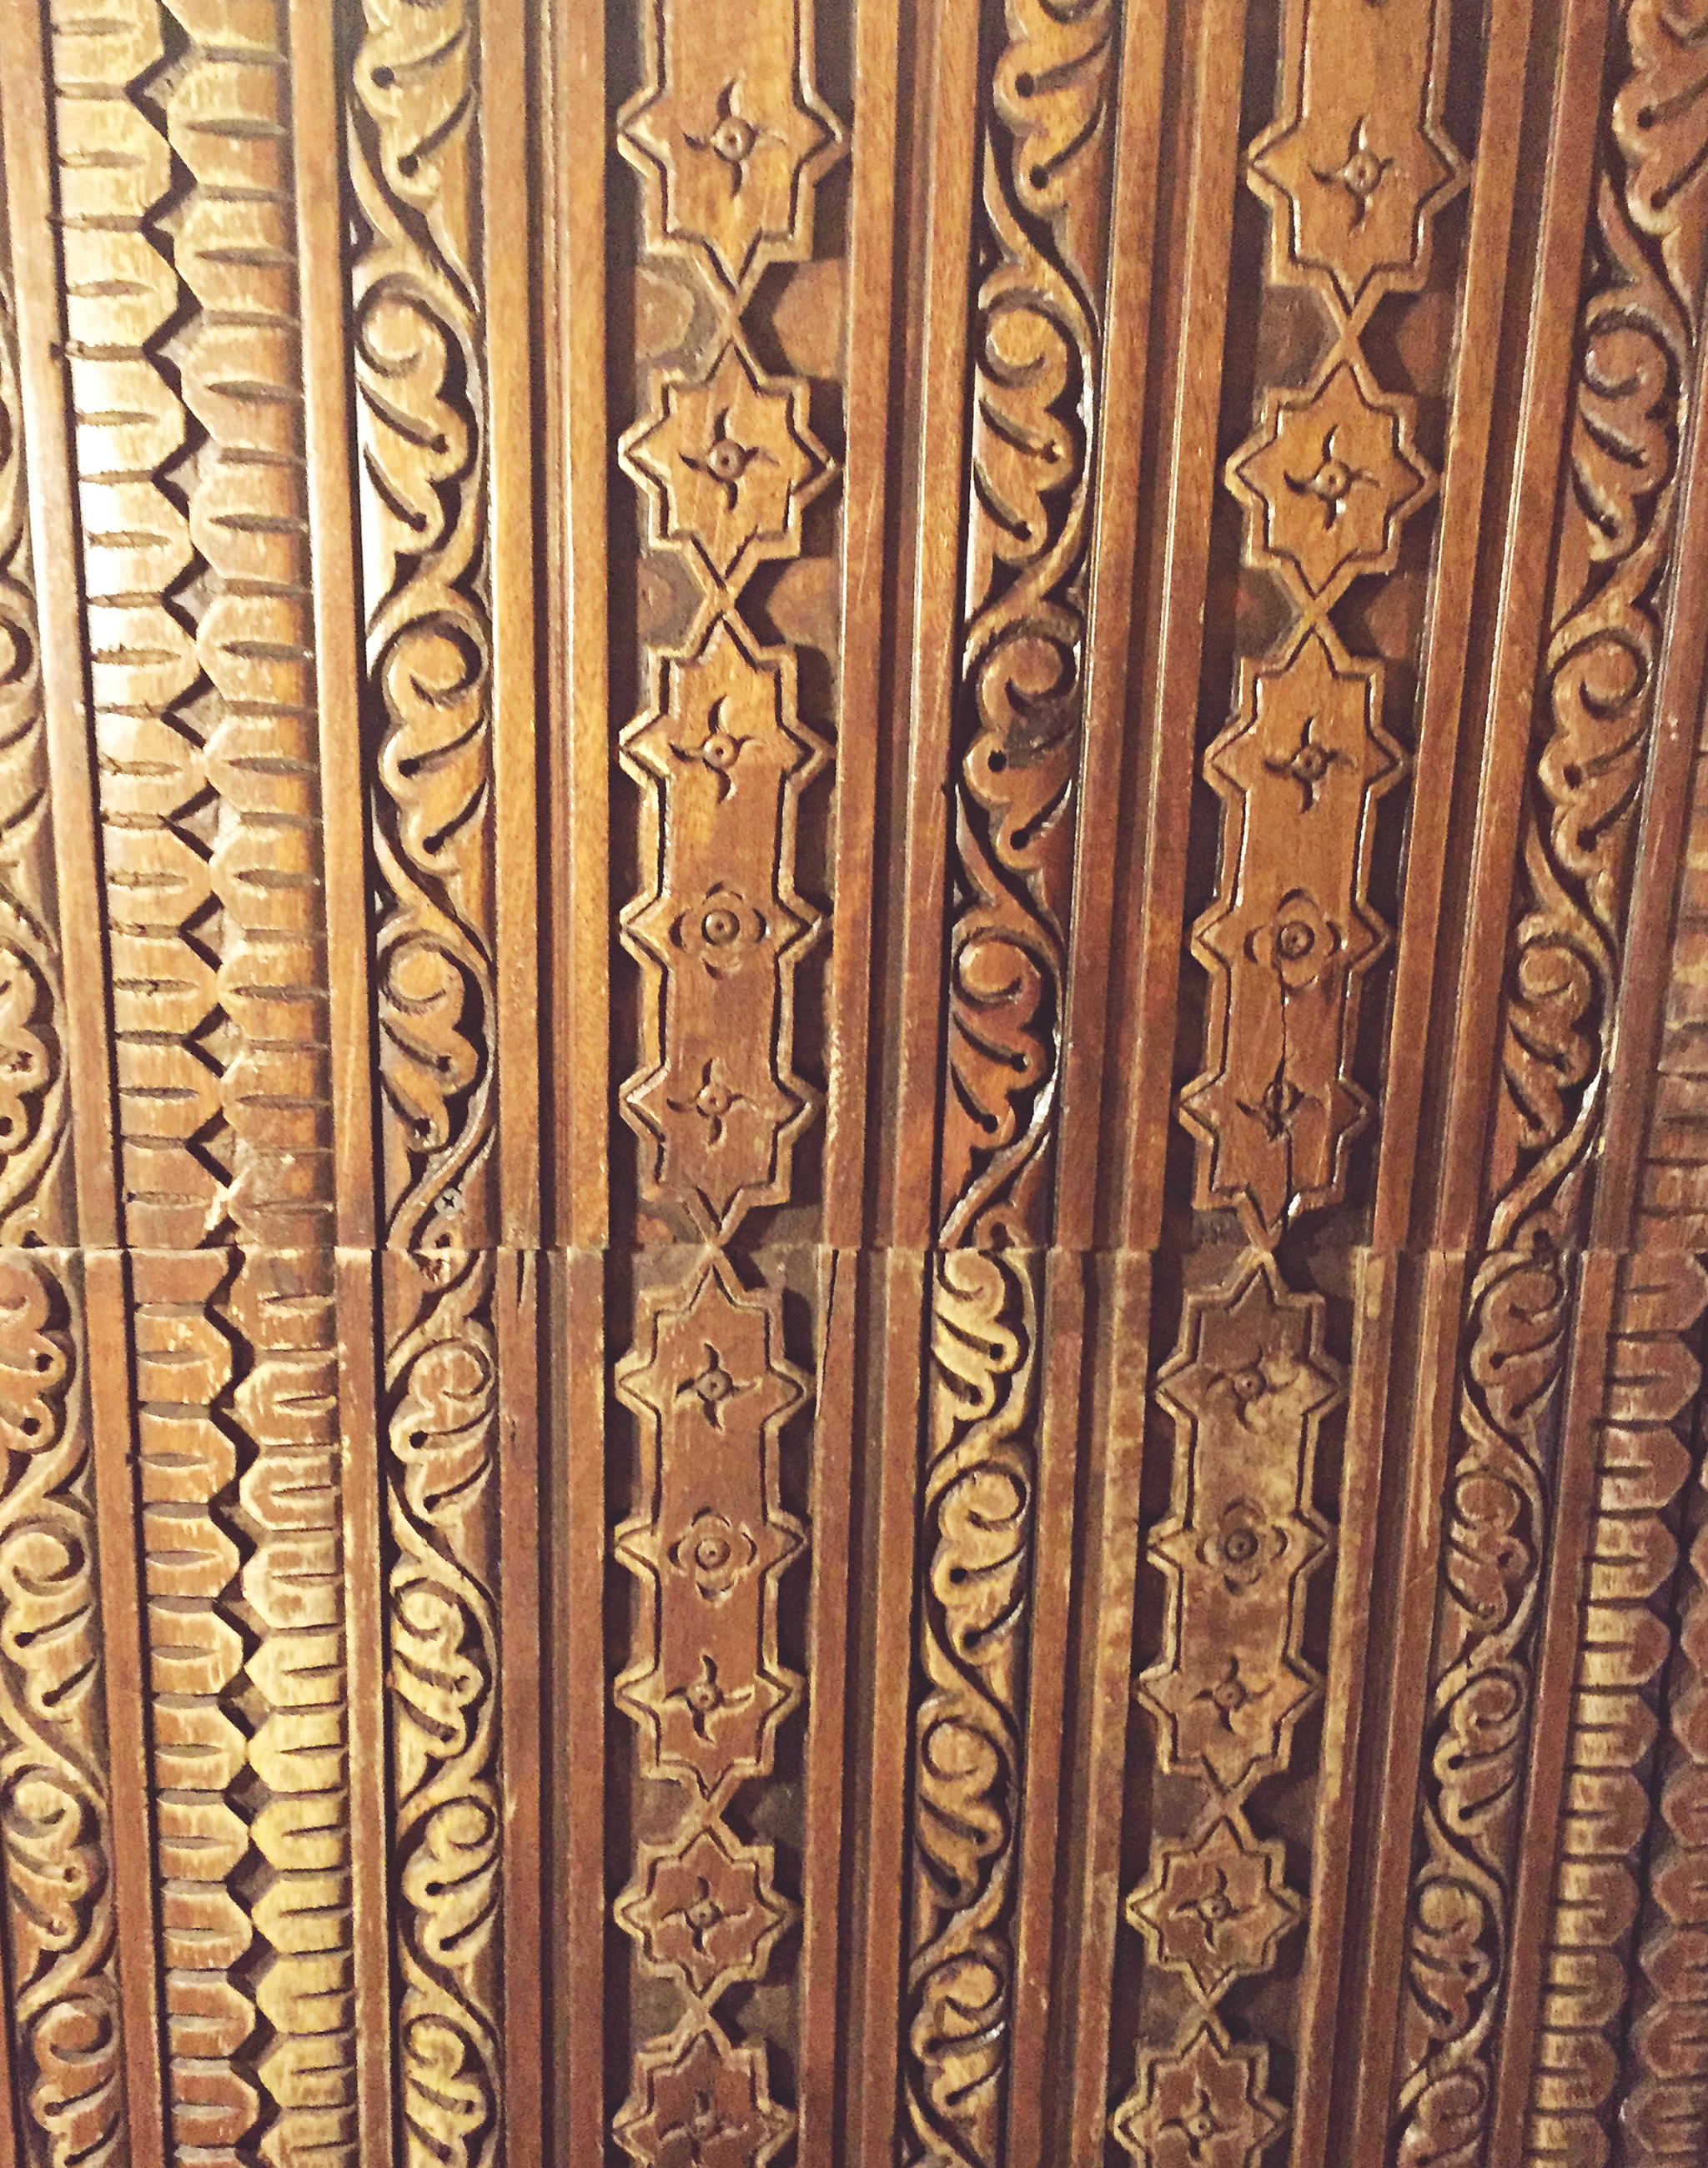 Ceiling of Inn of the Five Graces in Santa Fe, New Mexico